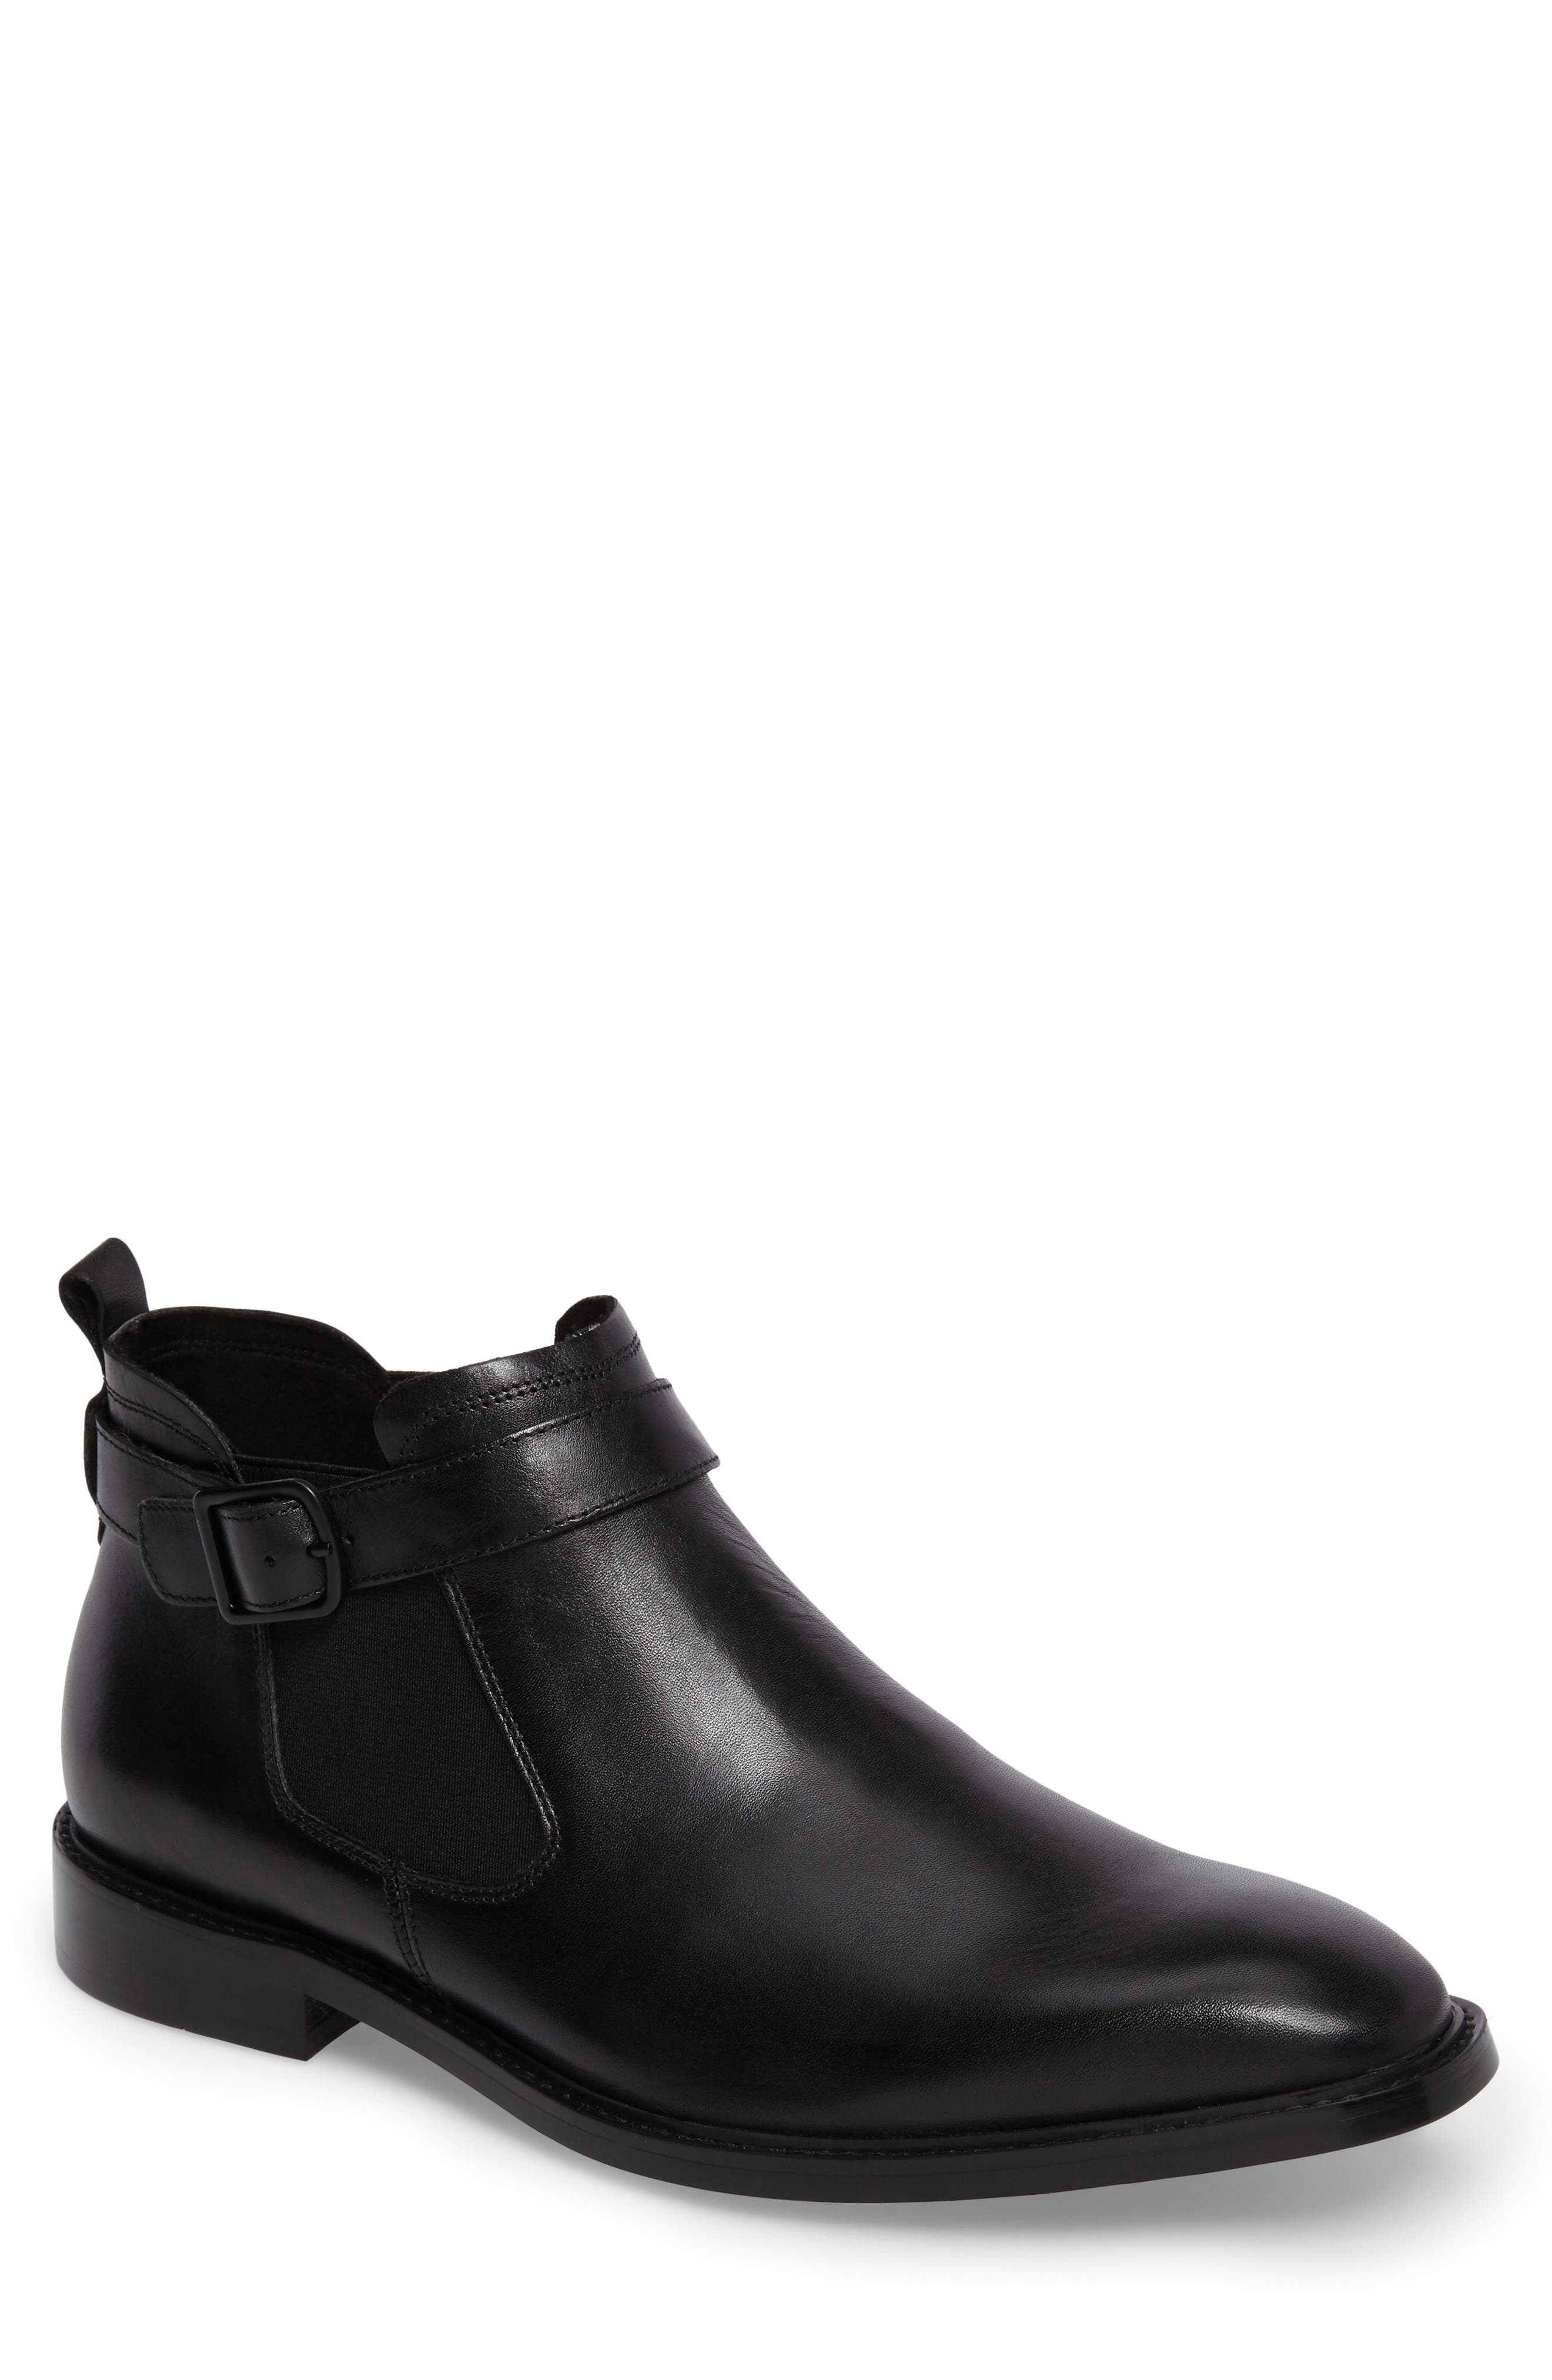 'Sum-Times' Chelsea Boot,                             Main thumbnail 1, color,                             001